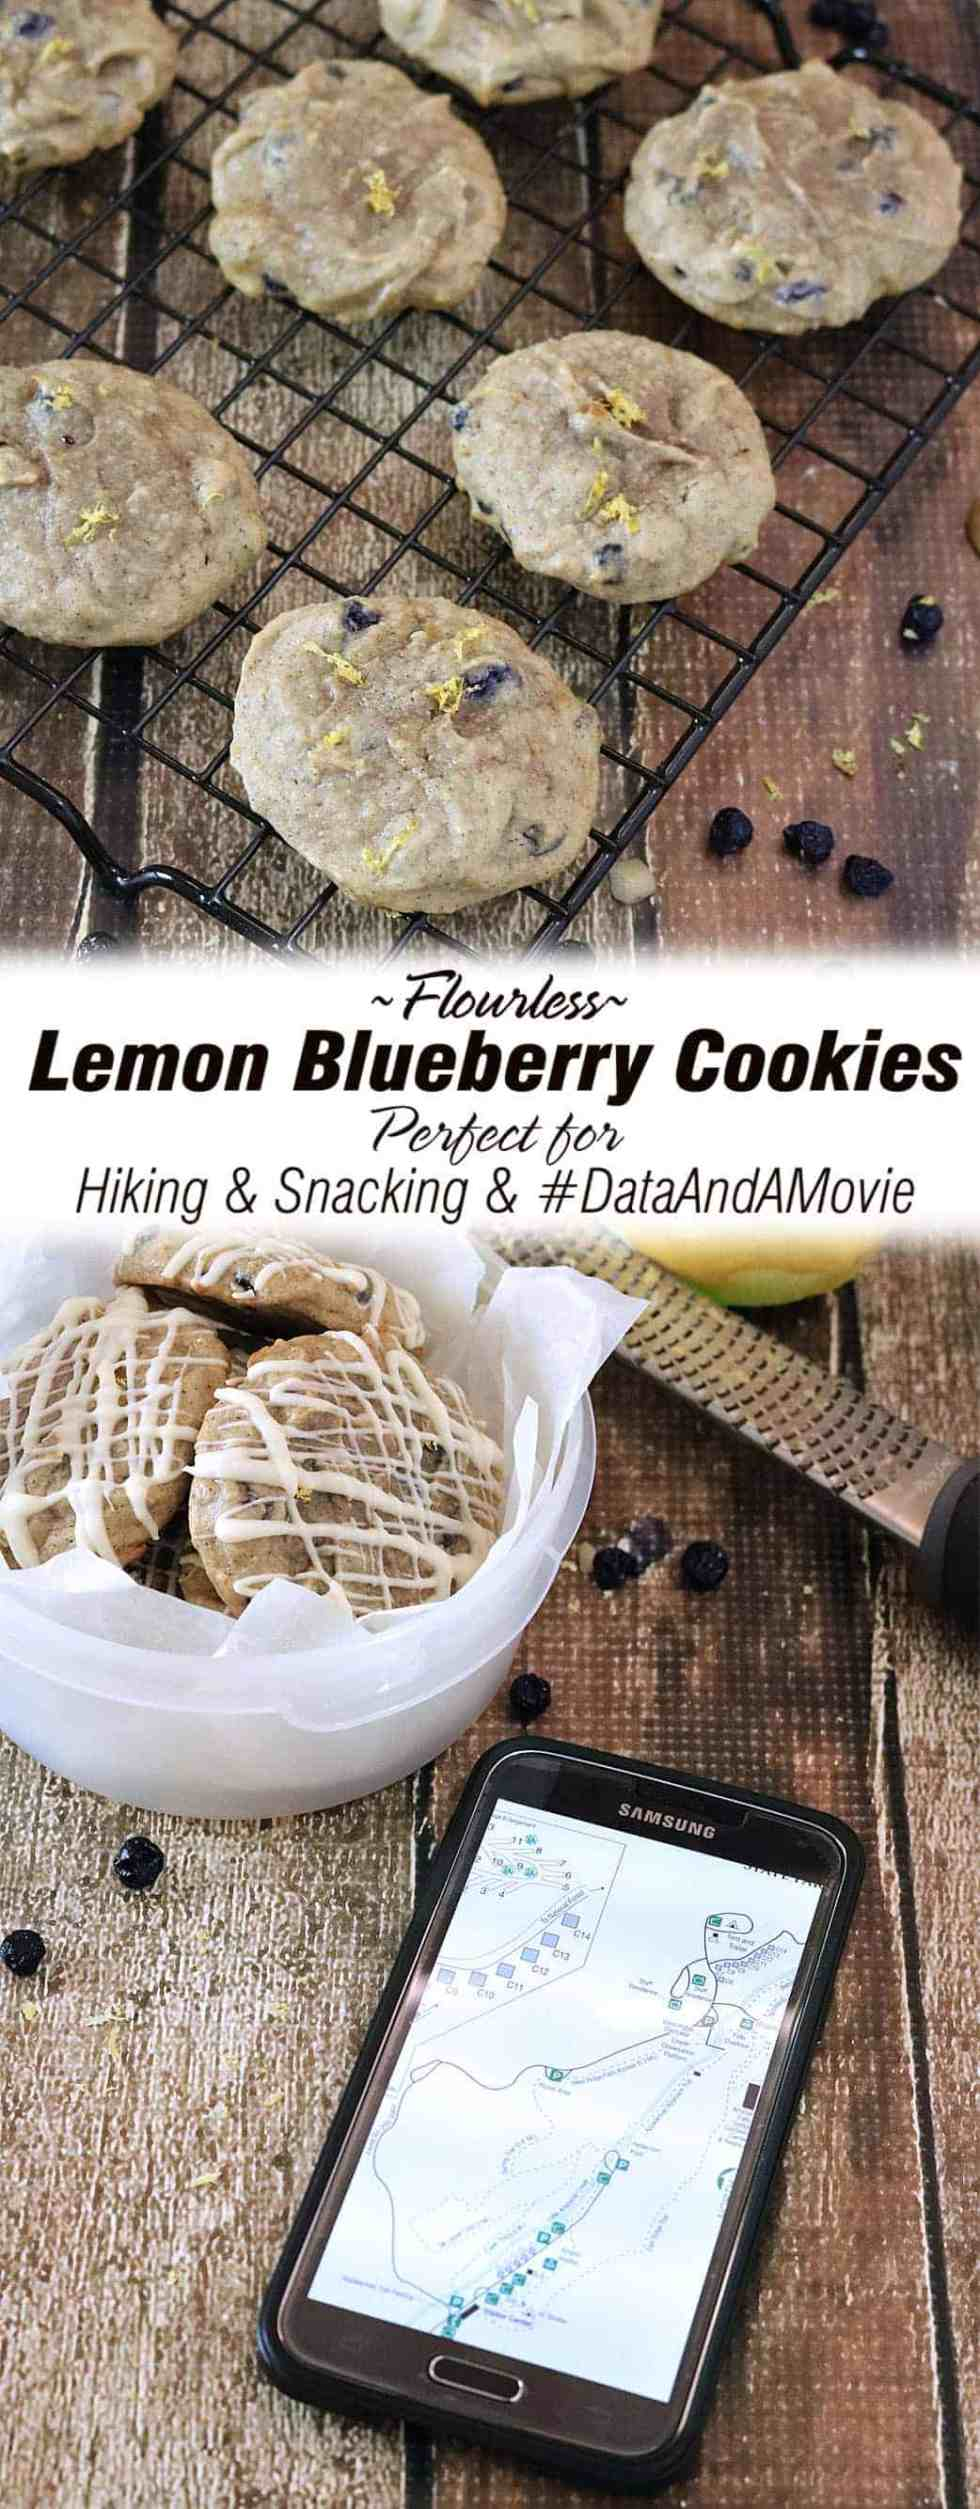 Lemon Blueberry Cookies {Flourless} #DataAndAMovie